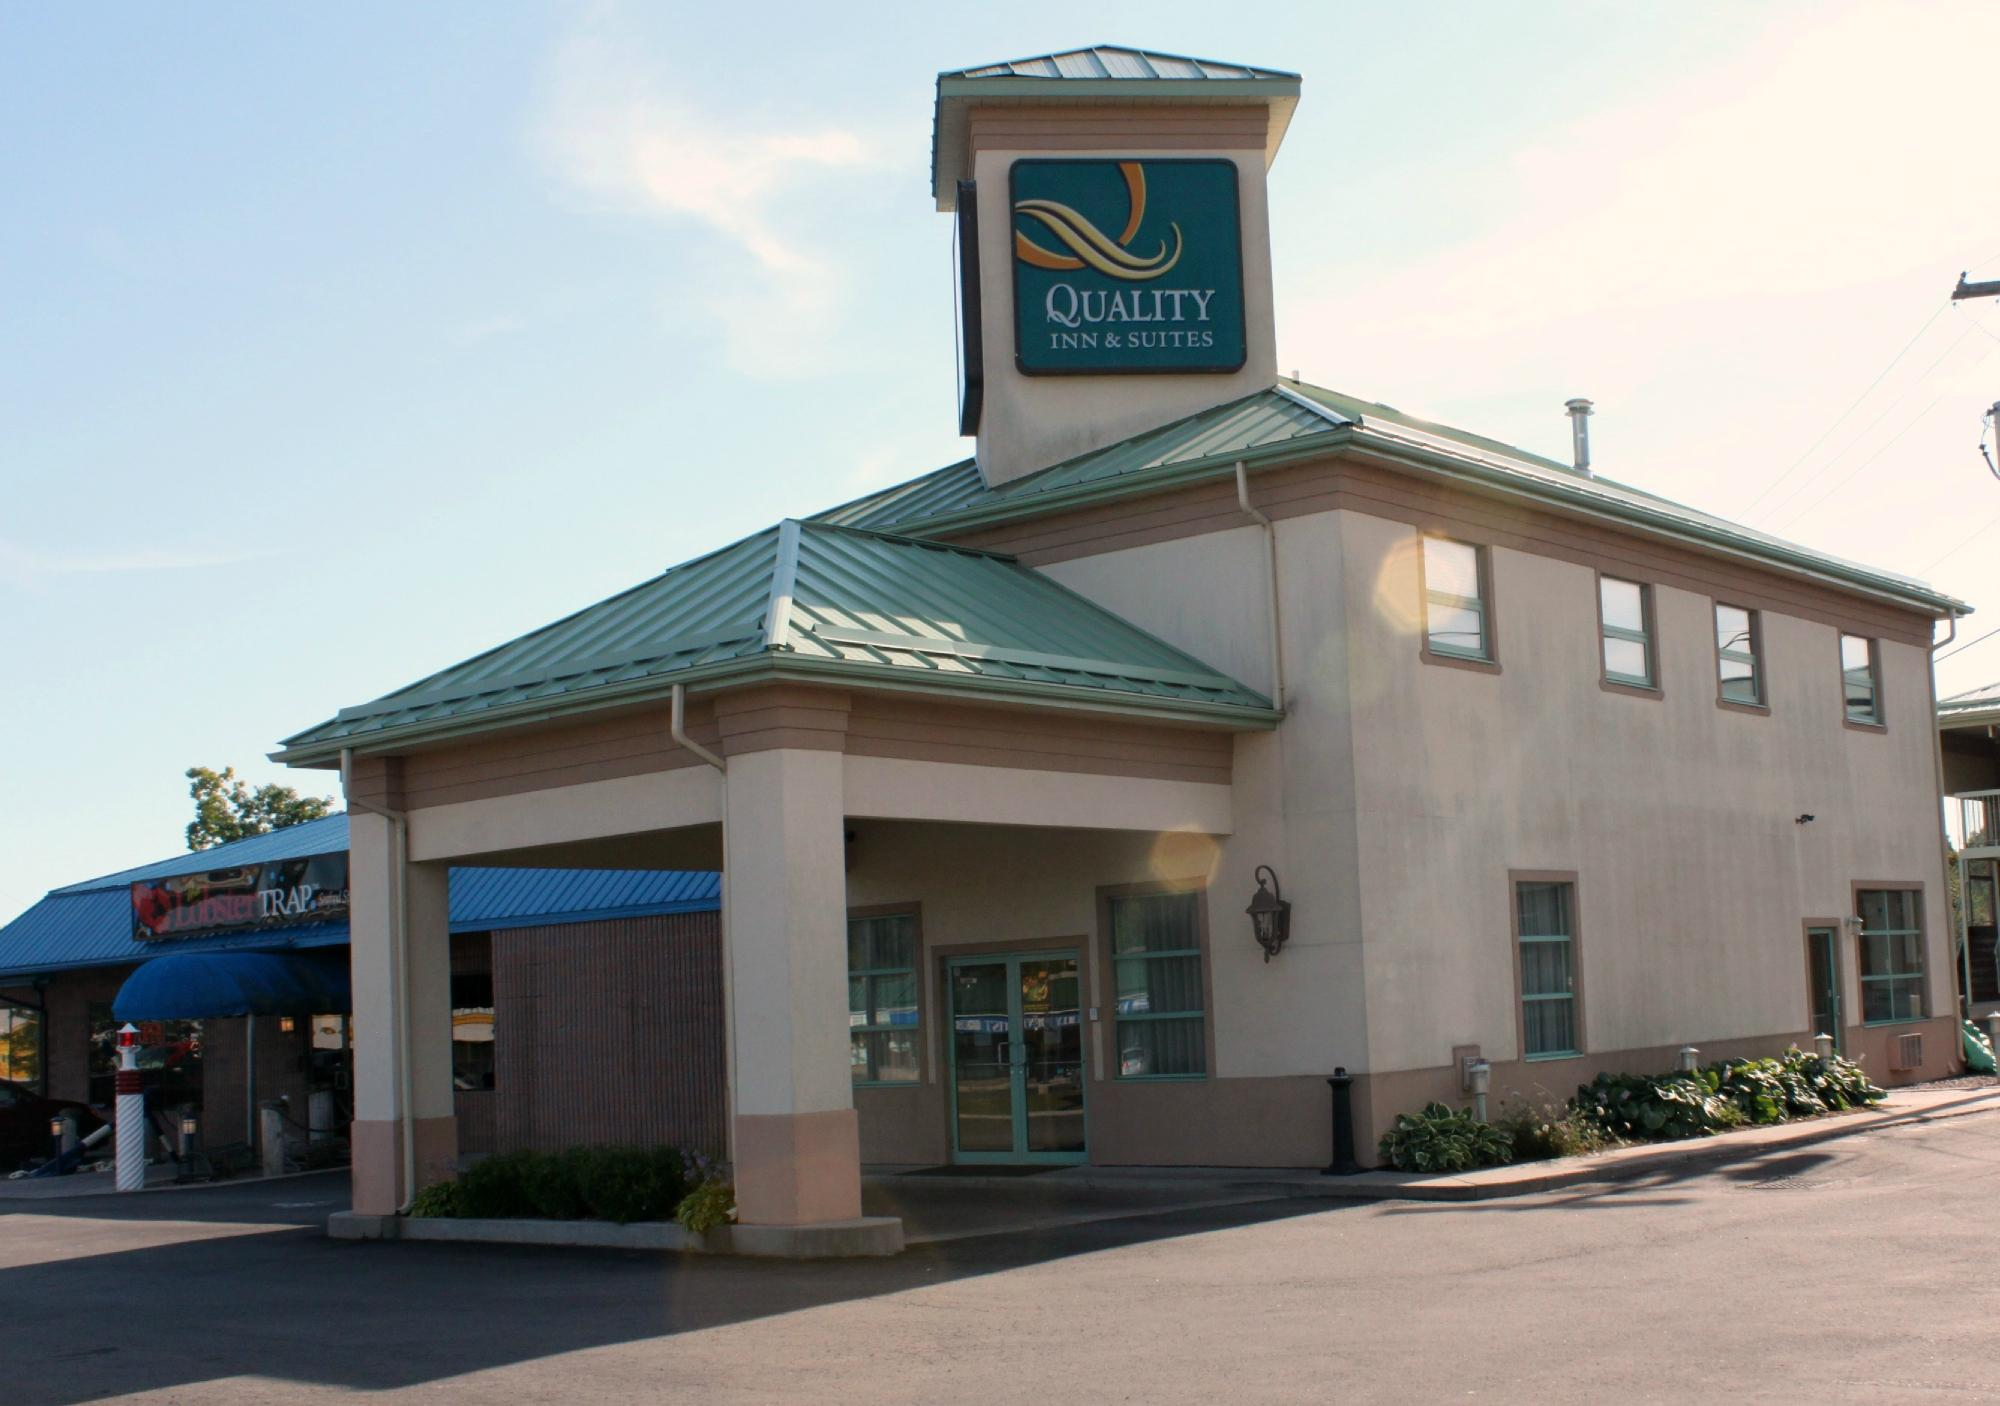 Quality Inn & Suites 1000 Islands